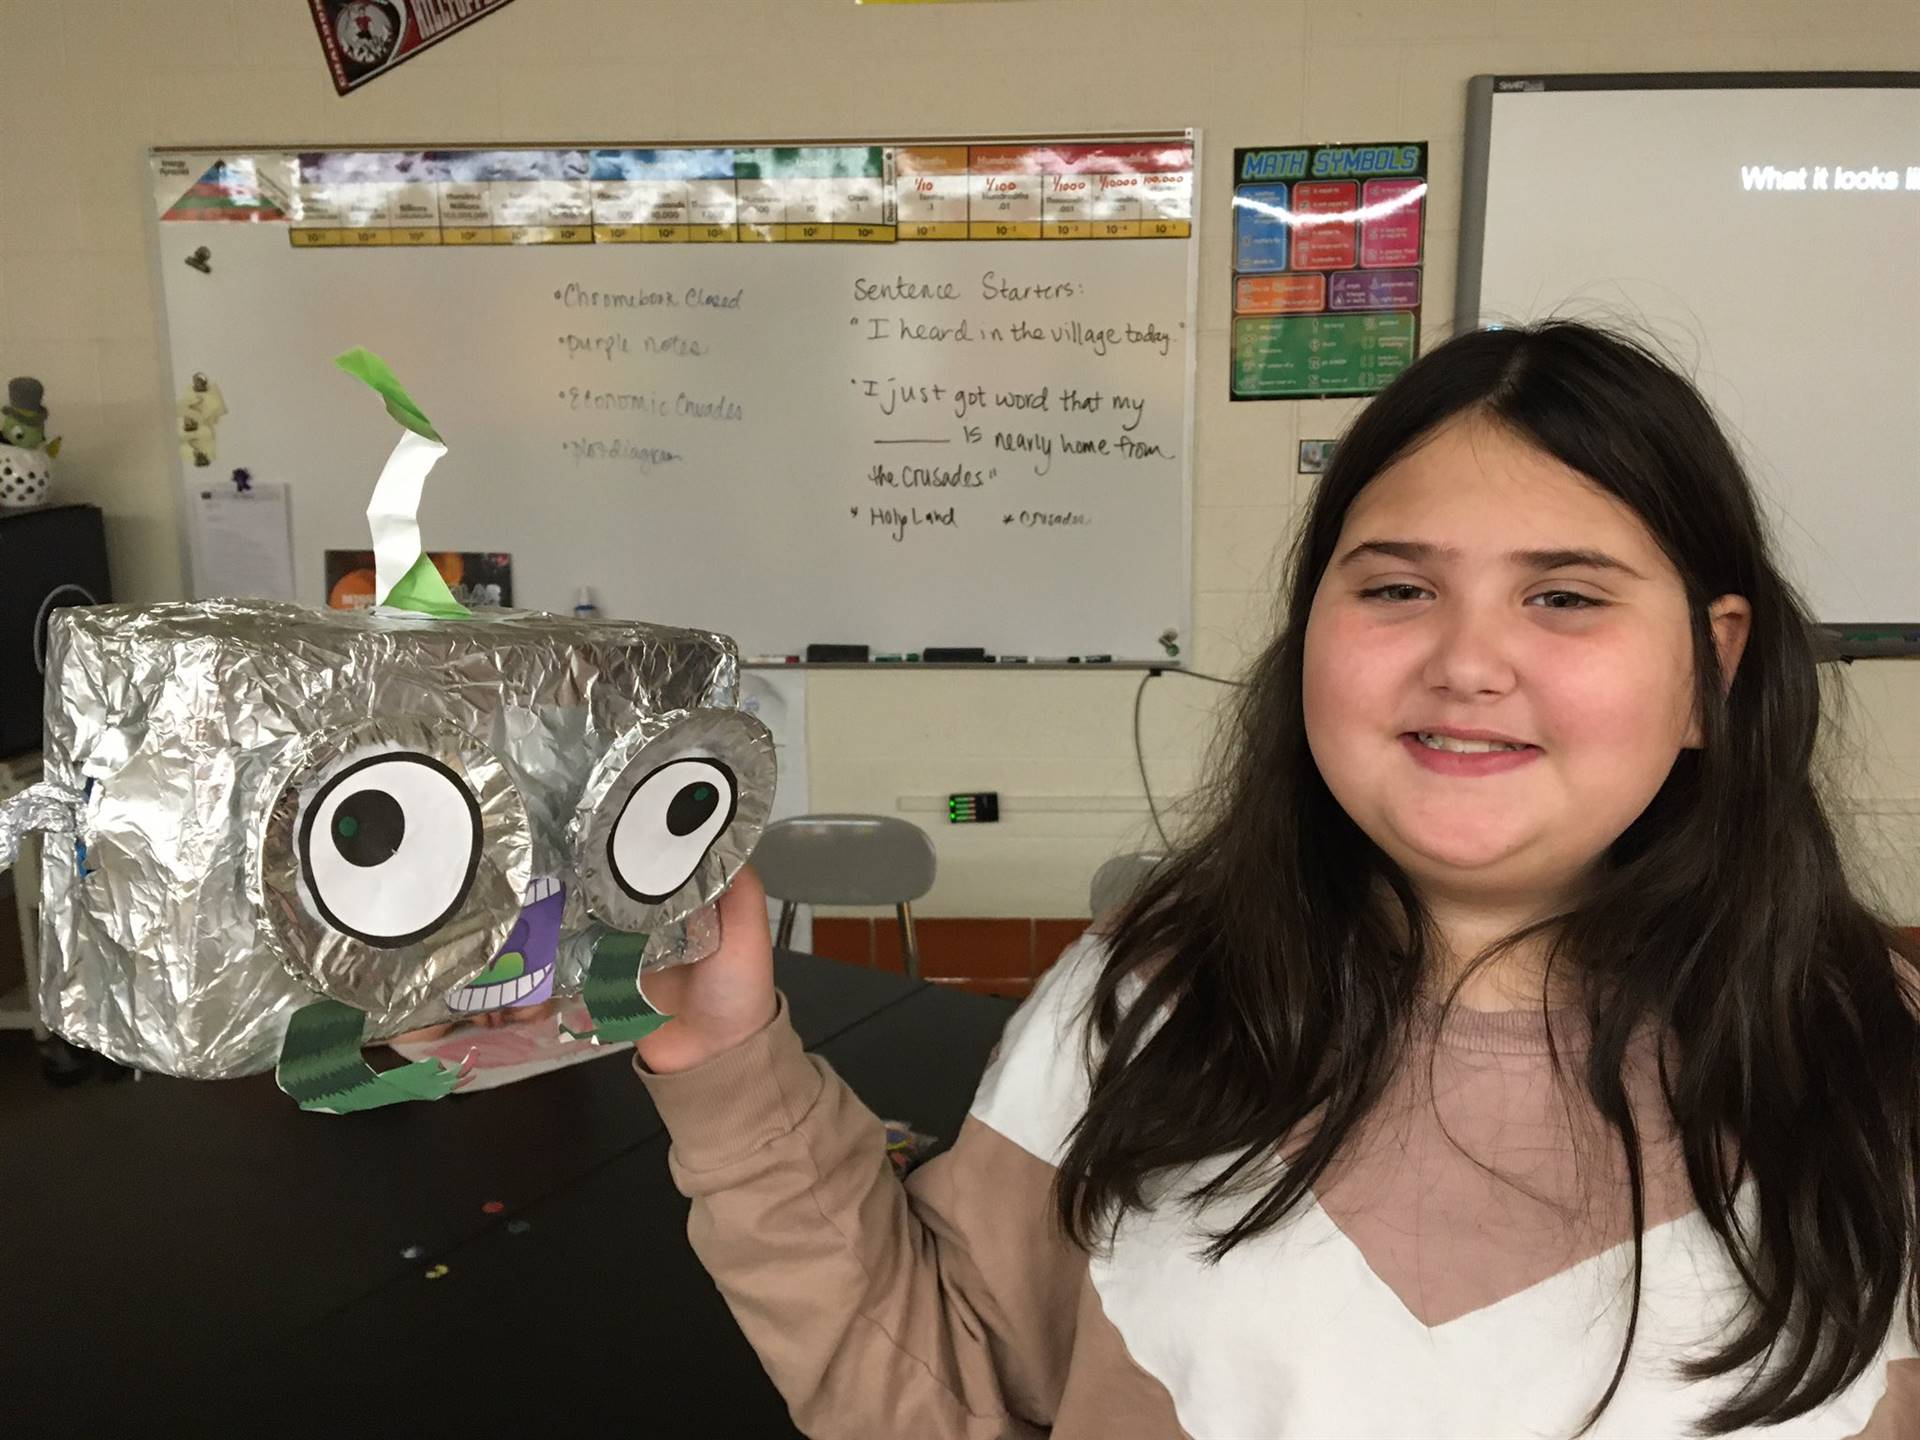 Chardon Middle School - Student Attending Creative Earth Party